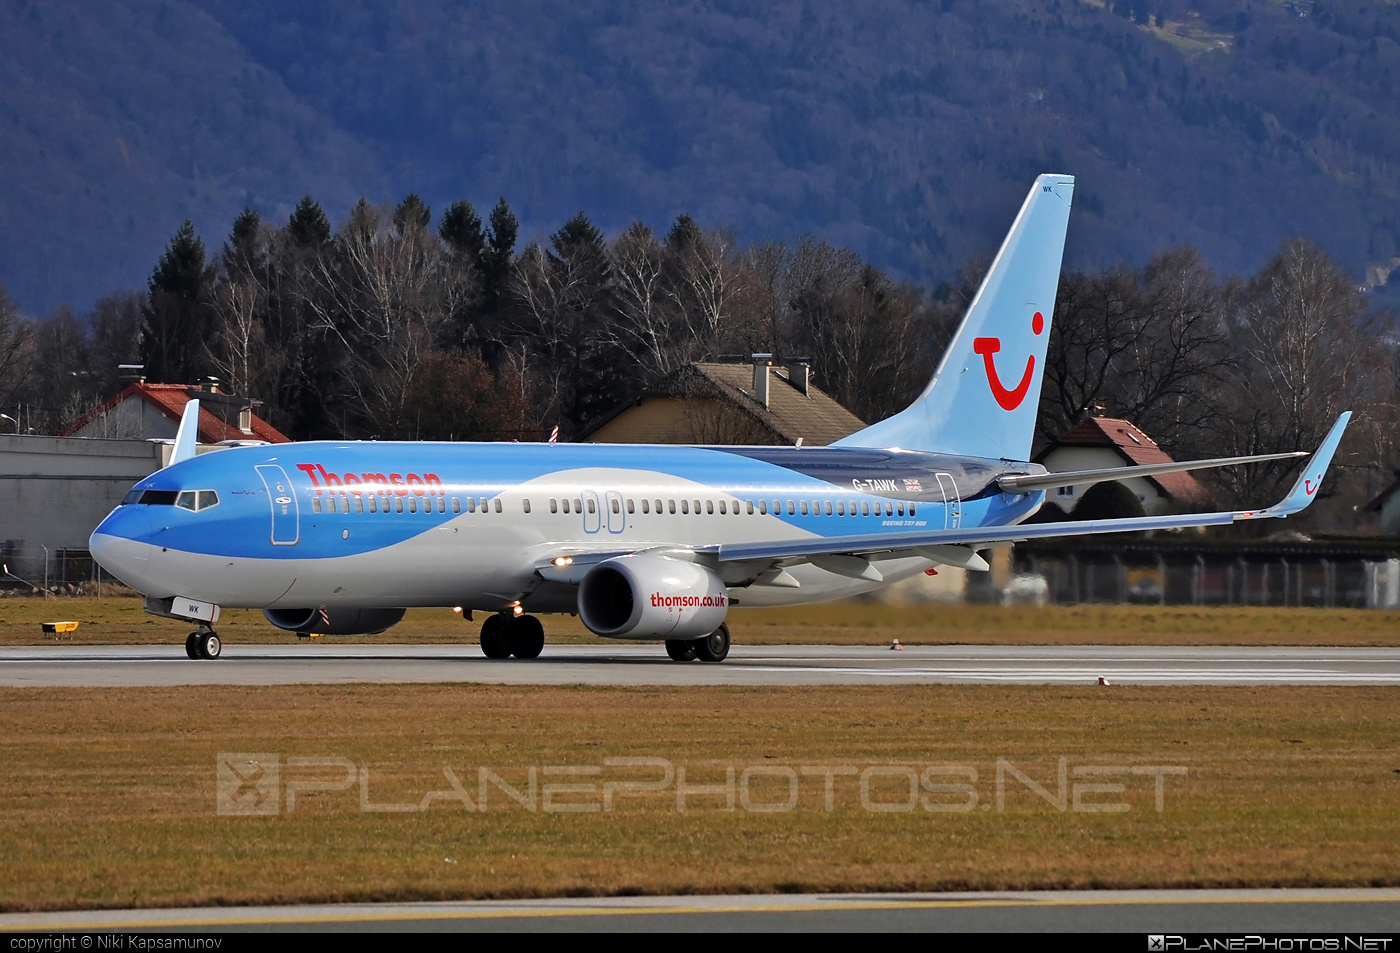 Boeing 737-800 - G-TAWK operated by Thomson Airways #b737 #b737nextgen #b737ng #boeing #boeing737